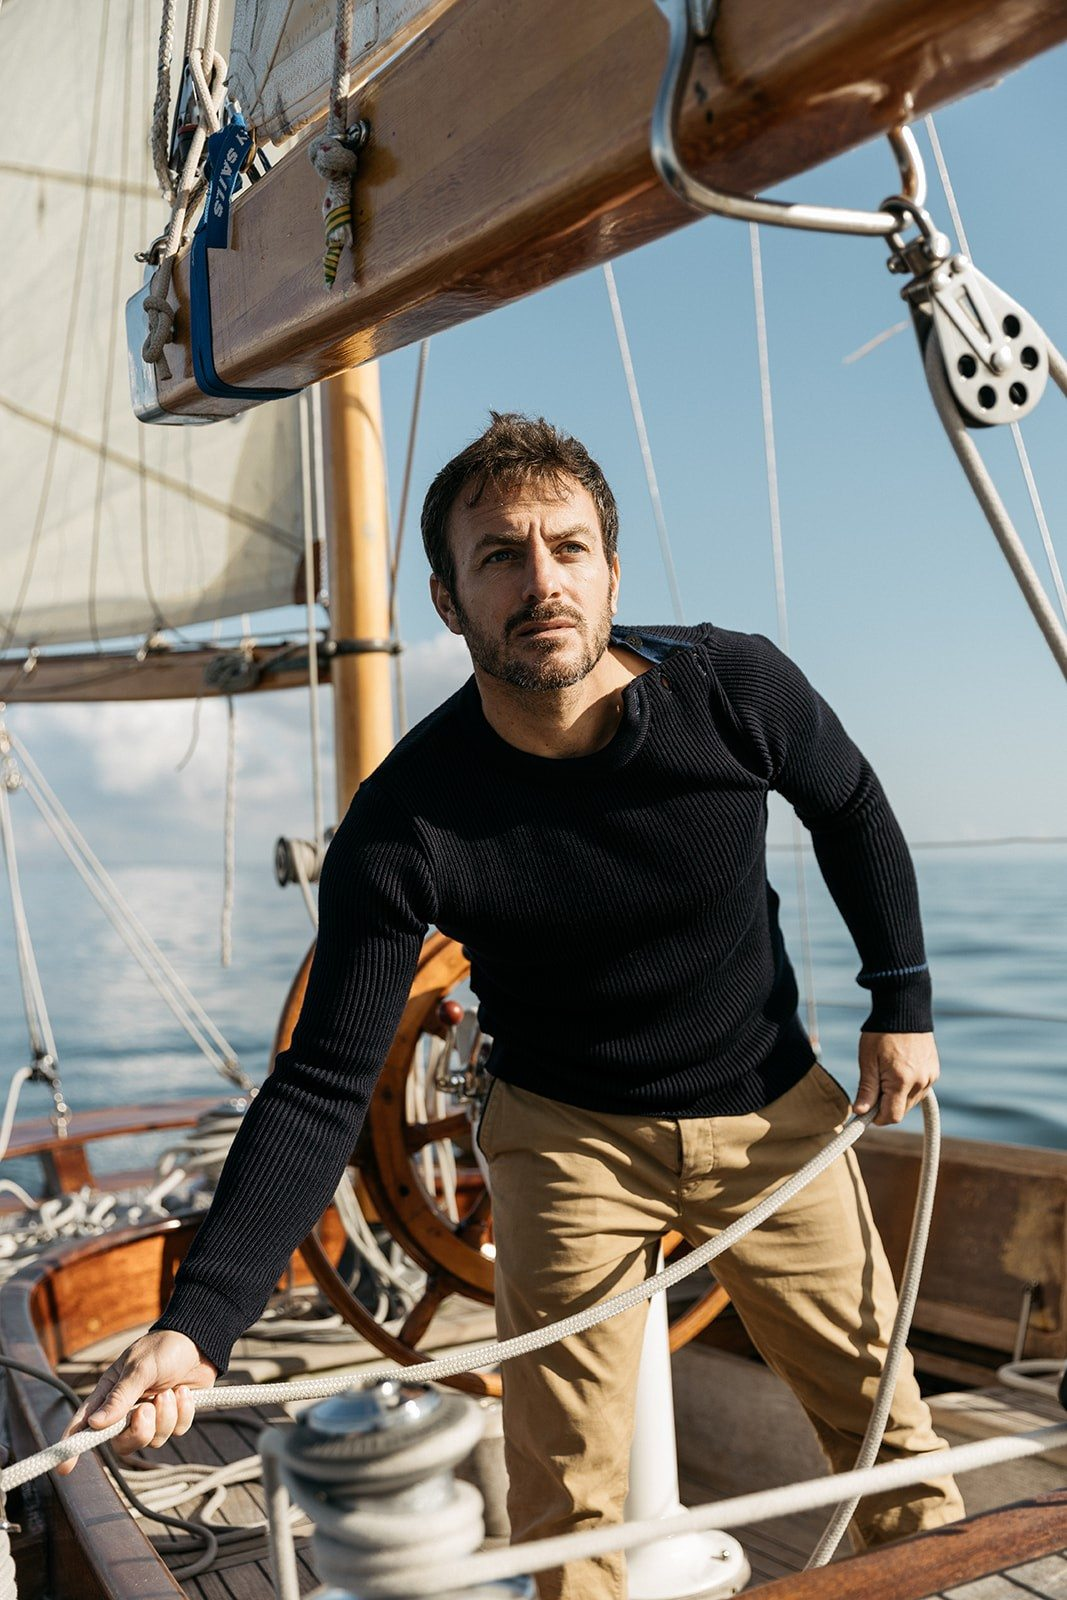 Marie Tabarly Et Son Compagnon : marie, tabarly, compagnon, Marie, Tabarly, Taille